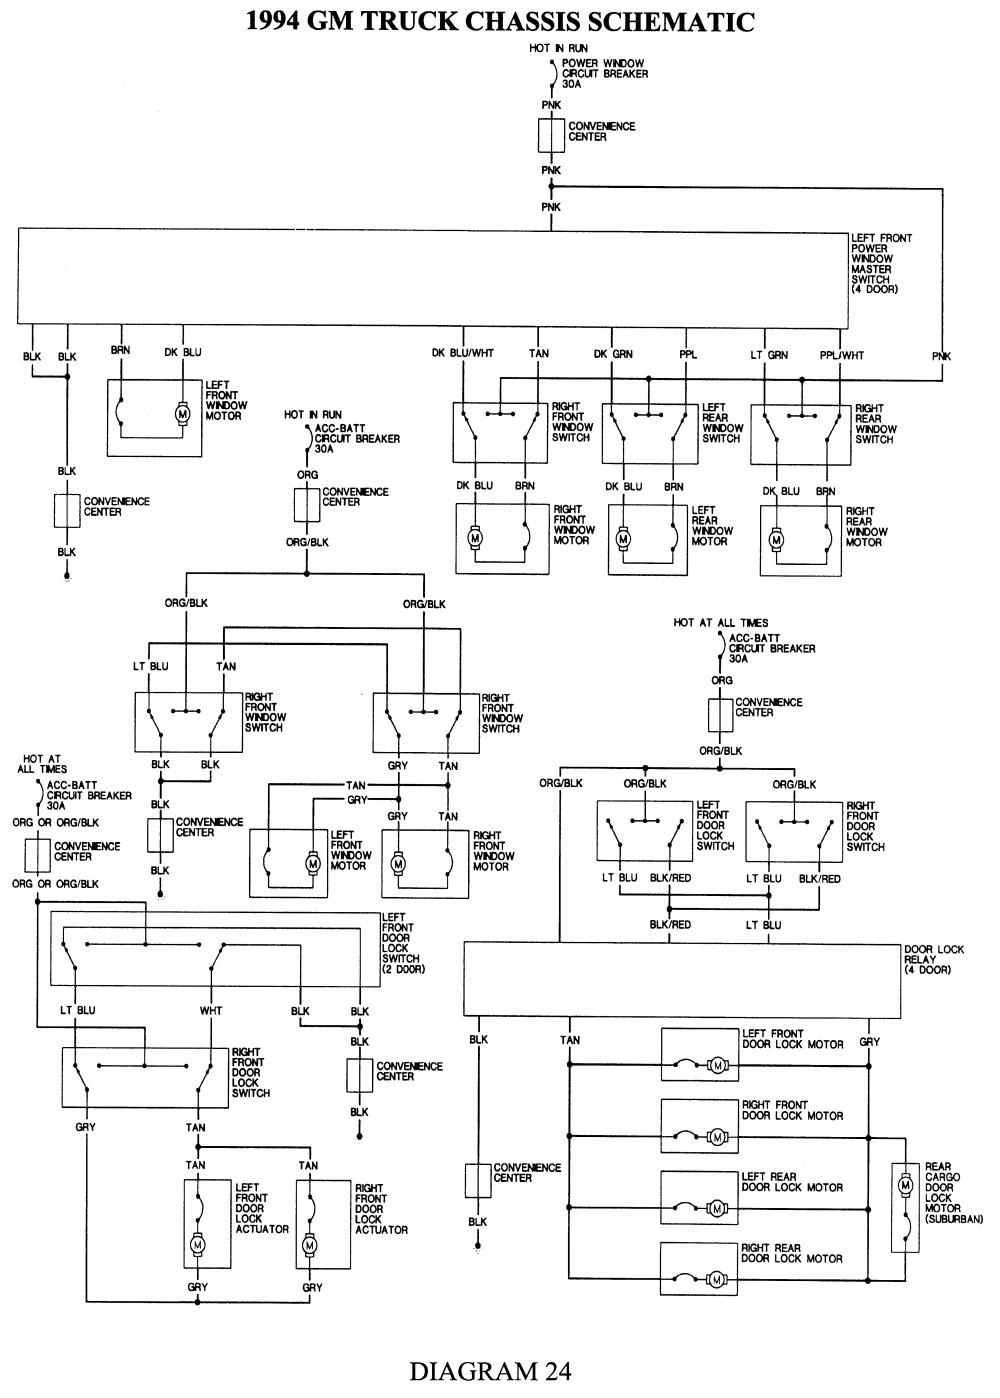 1994 Chevy Truck Wiring Diagram Free Wiring Diagram Image 93 S10 Alternator Wiring  Diagram 93 S10 Wiring Diagram